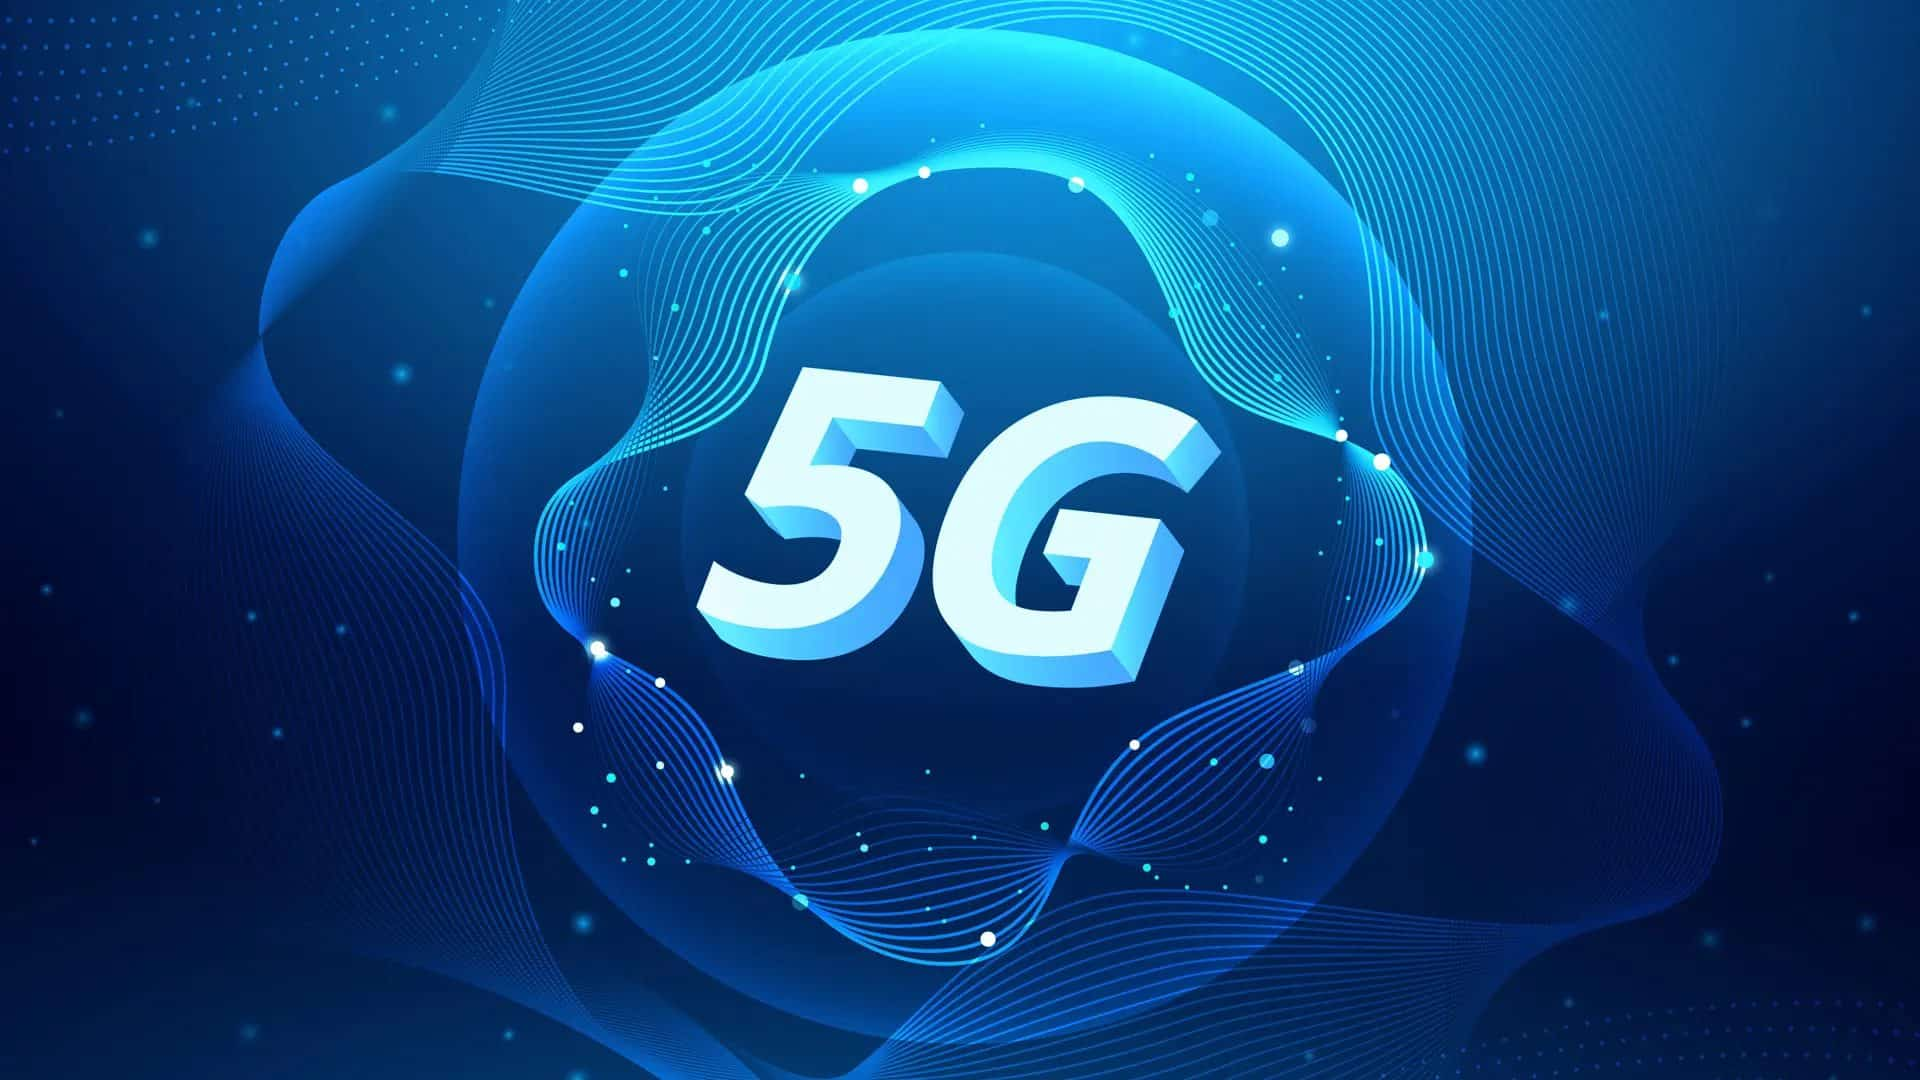 Airtel, Tata Group team up for 'Made in India' 5G network solutions